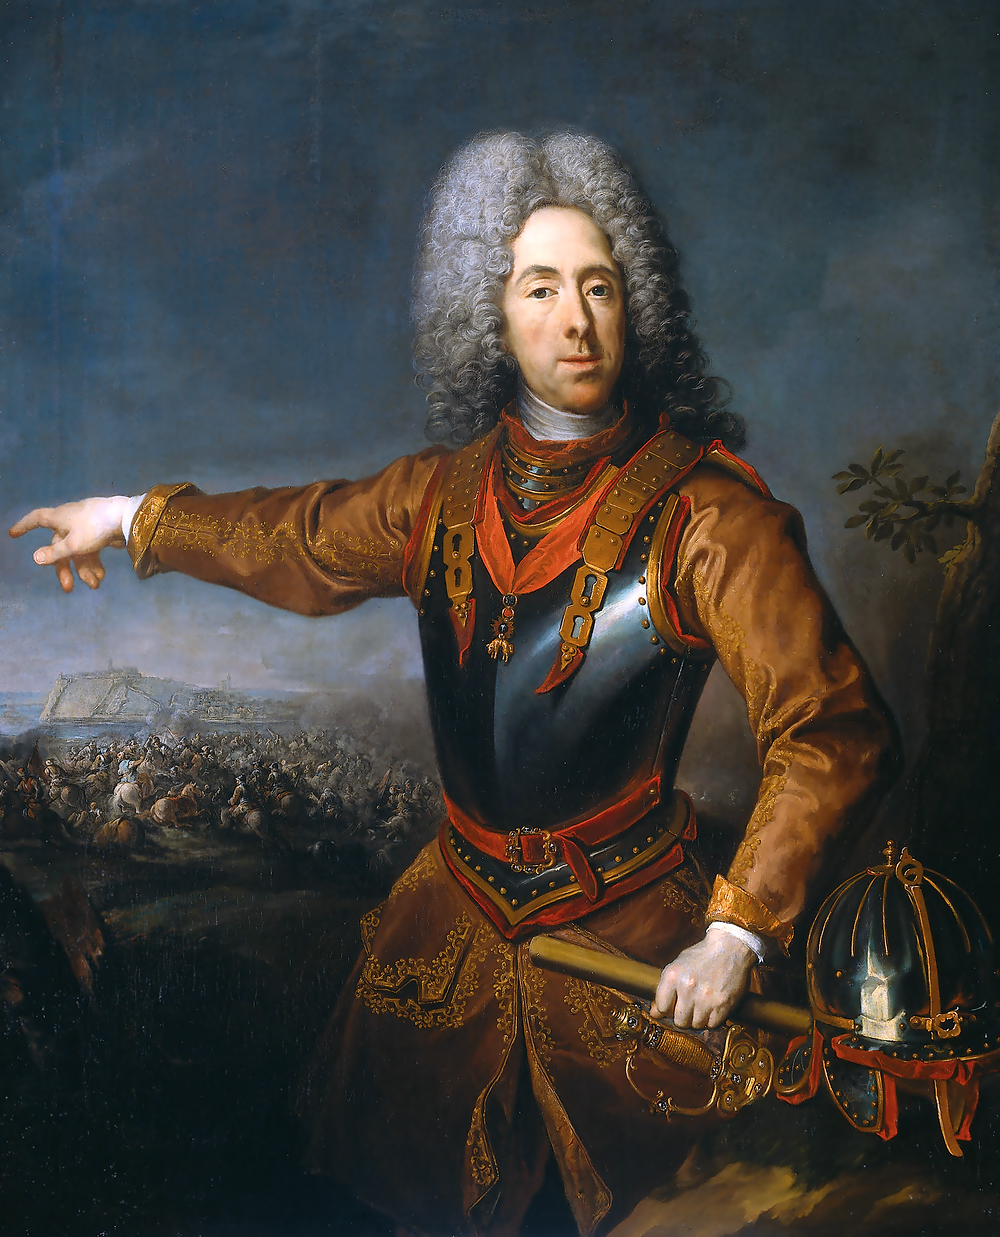 Prince Eugene of Savoy, Commander of the Austrian Army